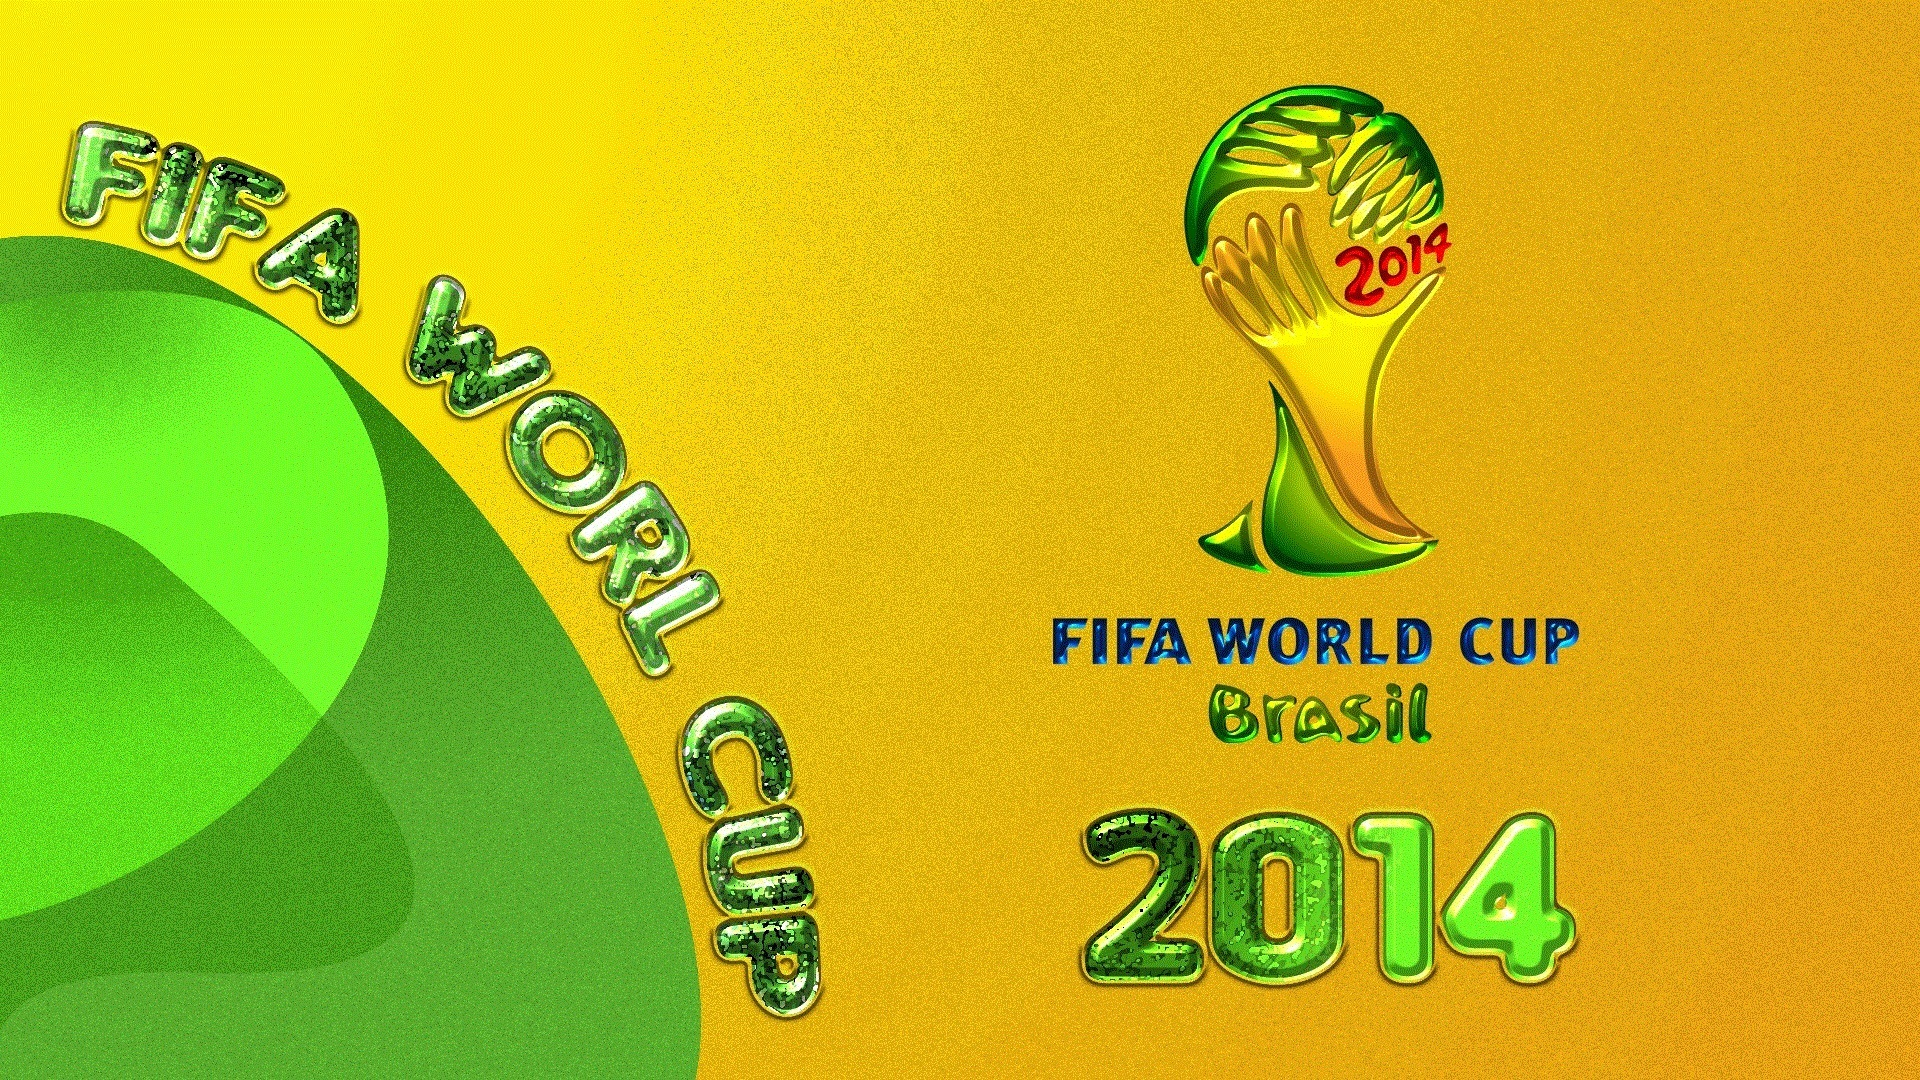 2014 fifa world cup wallpapers digital hd photos